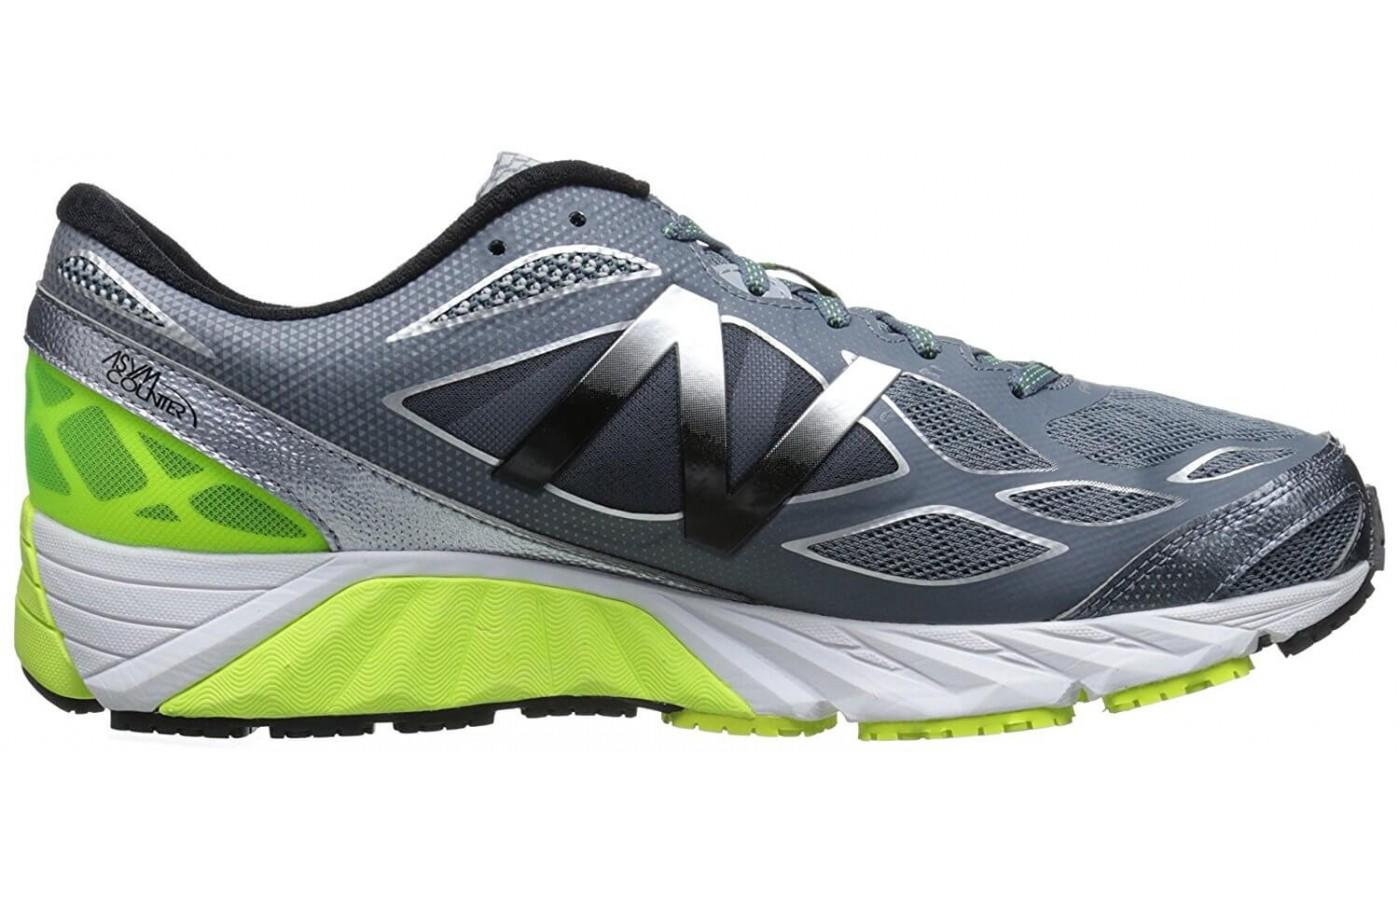 the 870 v4 is a stability shoe for overpronators